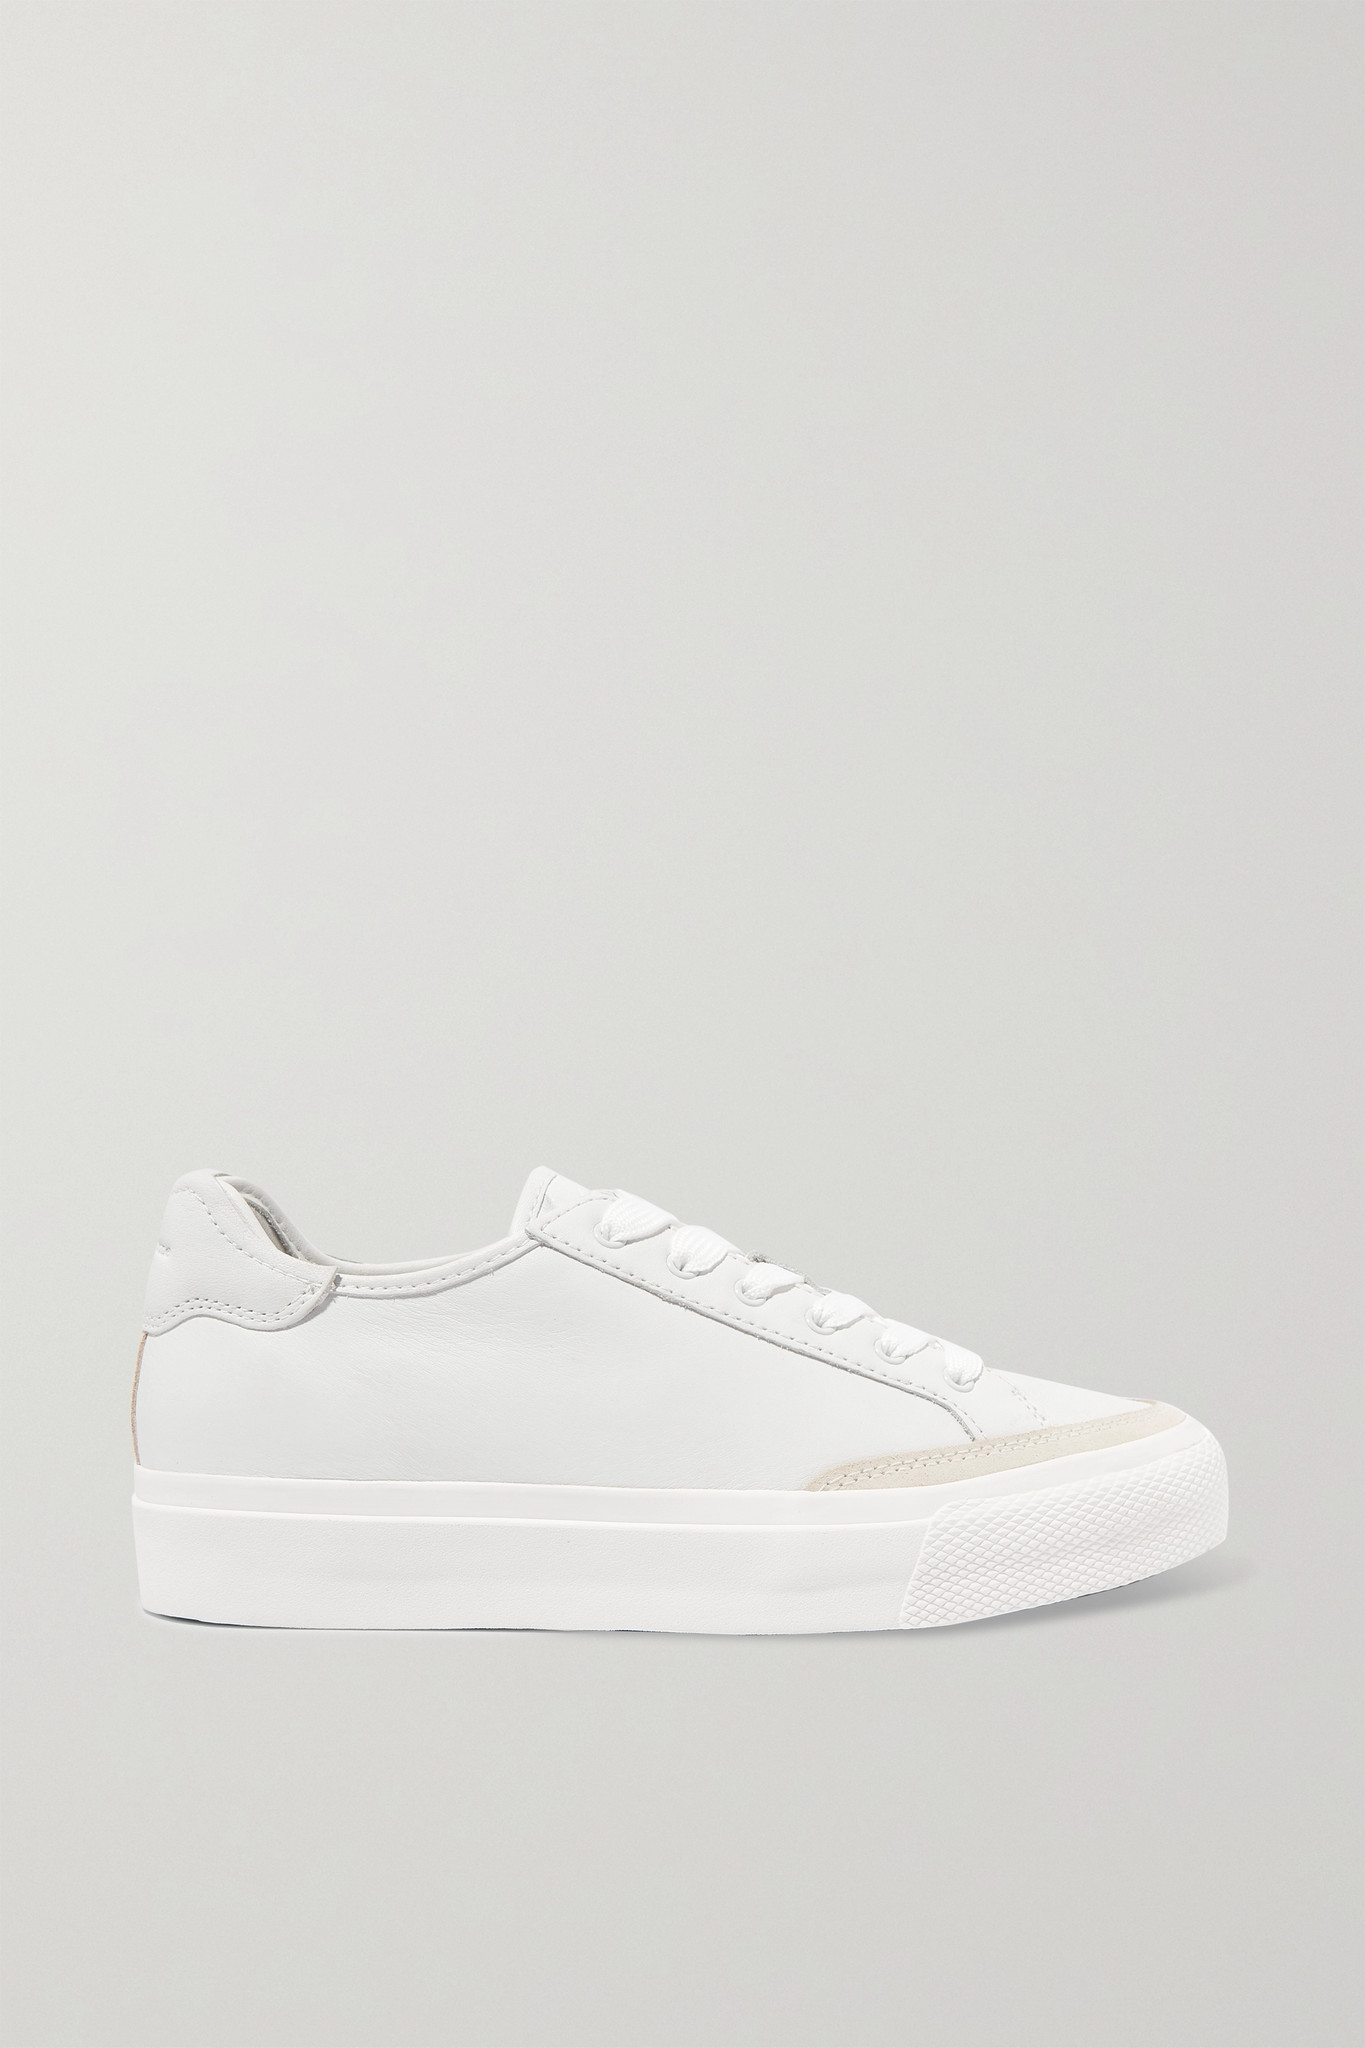 RAG & BONE - Army Suede-trimmed Leather Sneakers - White - IT36